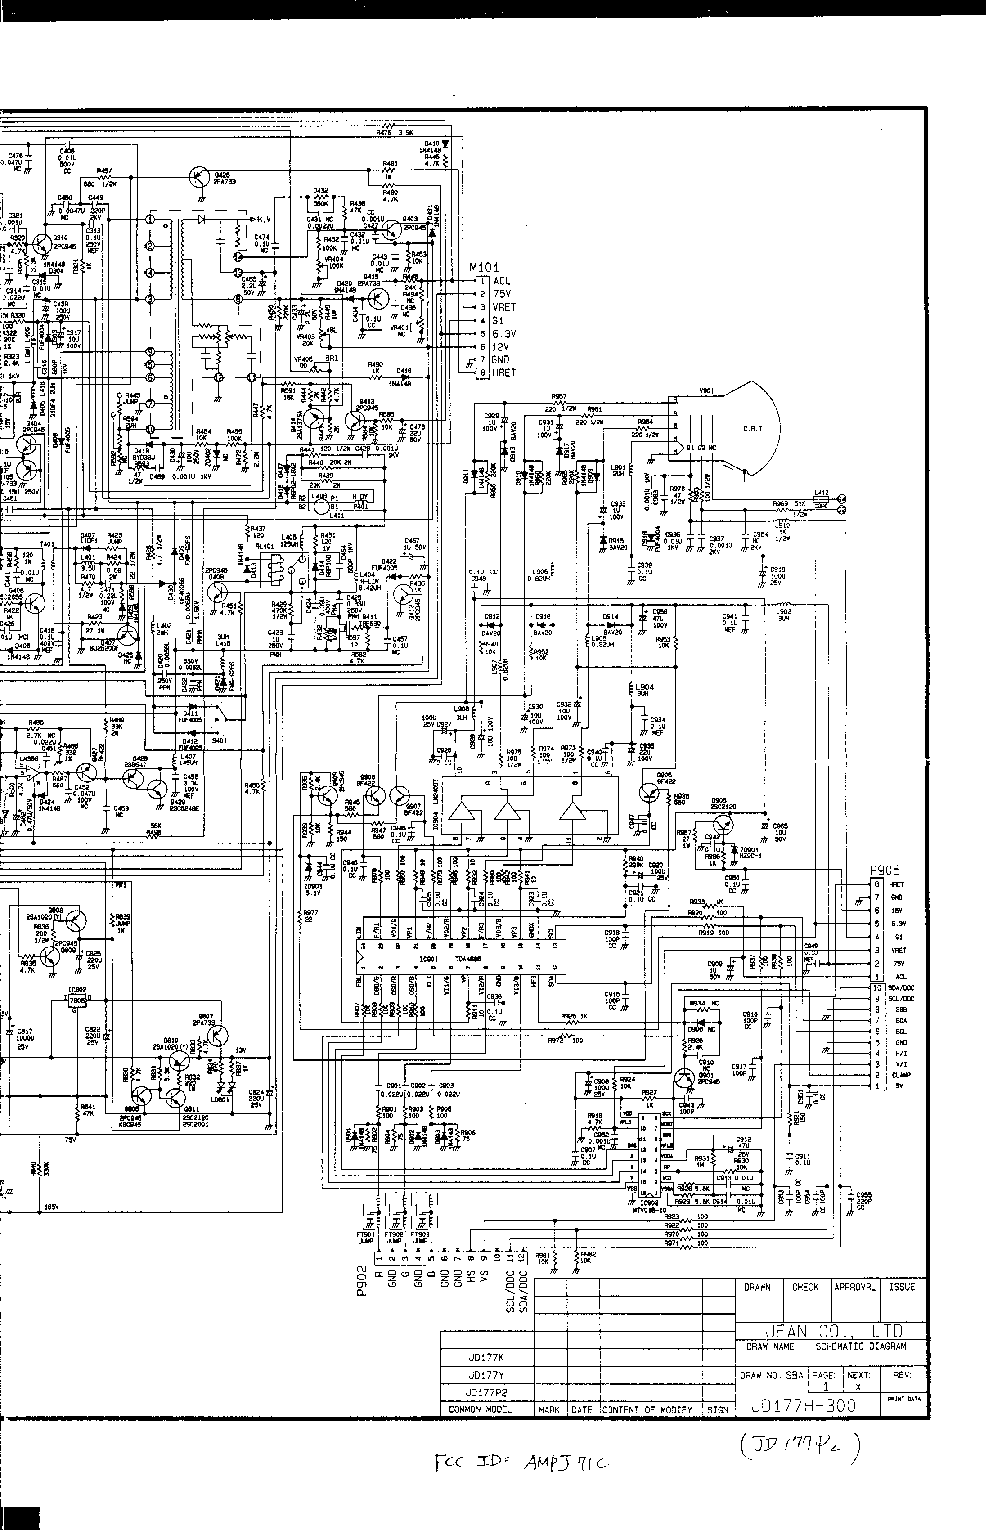 COMPAQ-441 Service Manual download, schematics, eeprom